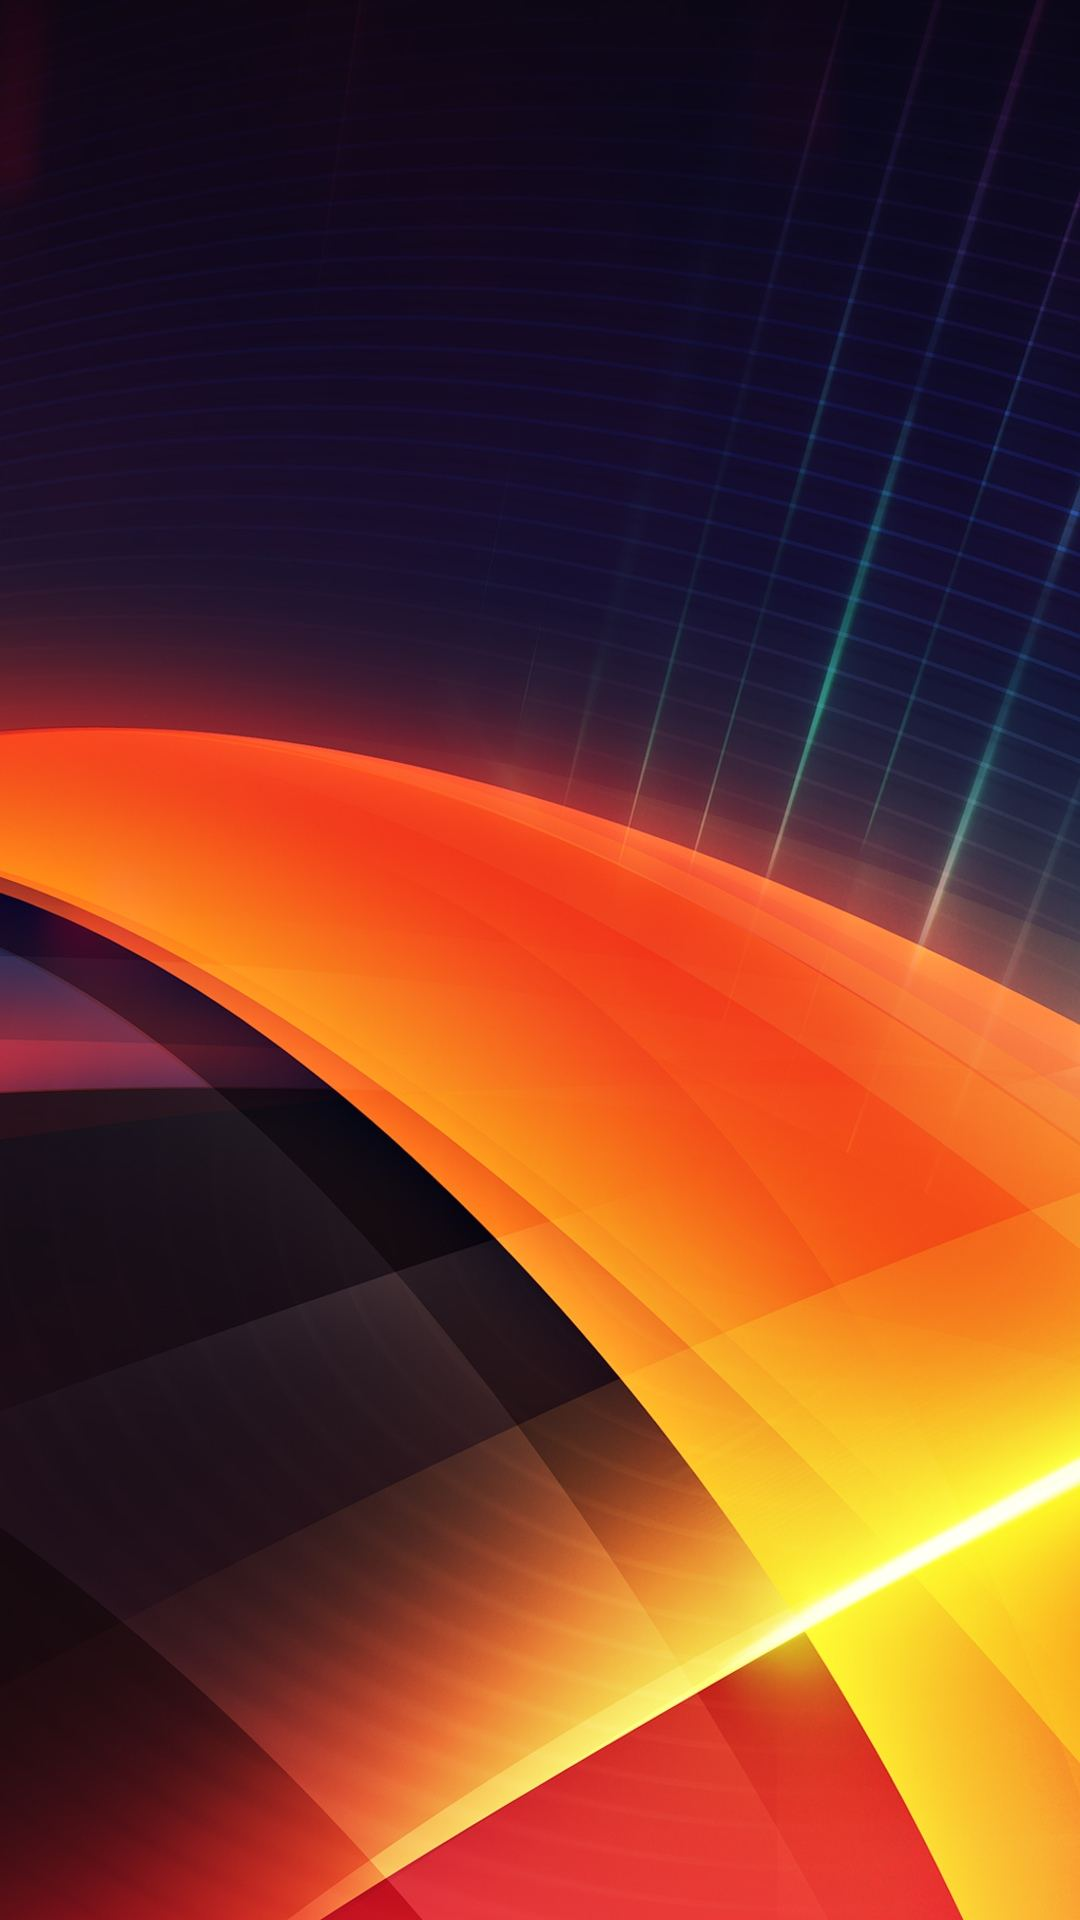 Futuristic Orange Layers Illustration iPhone 6 Plus HD Wallpaper